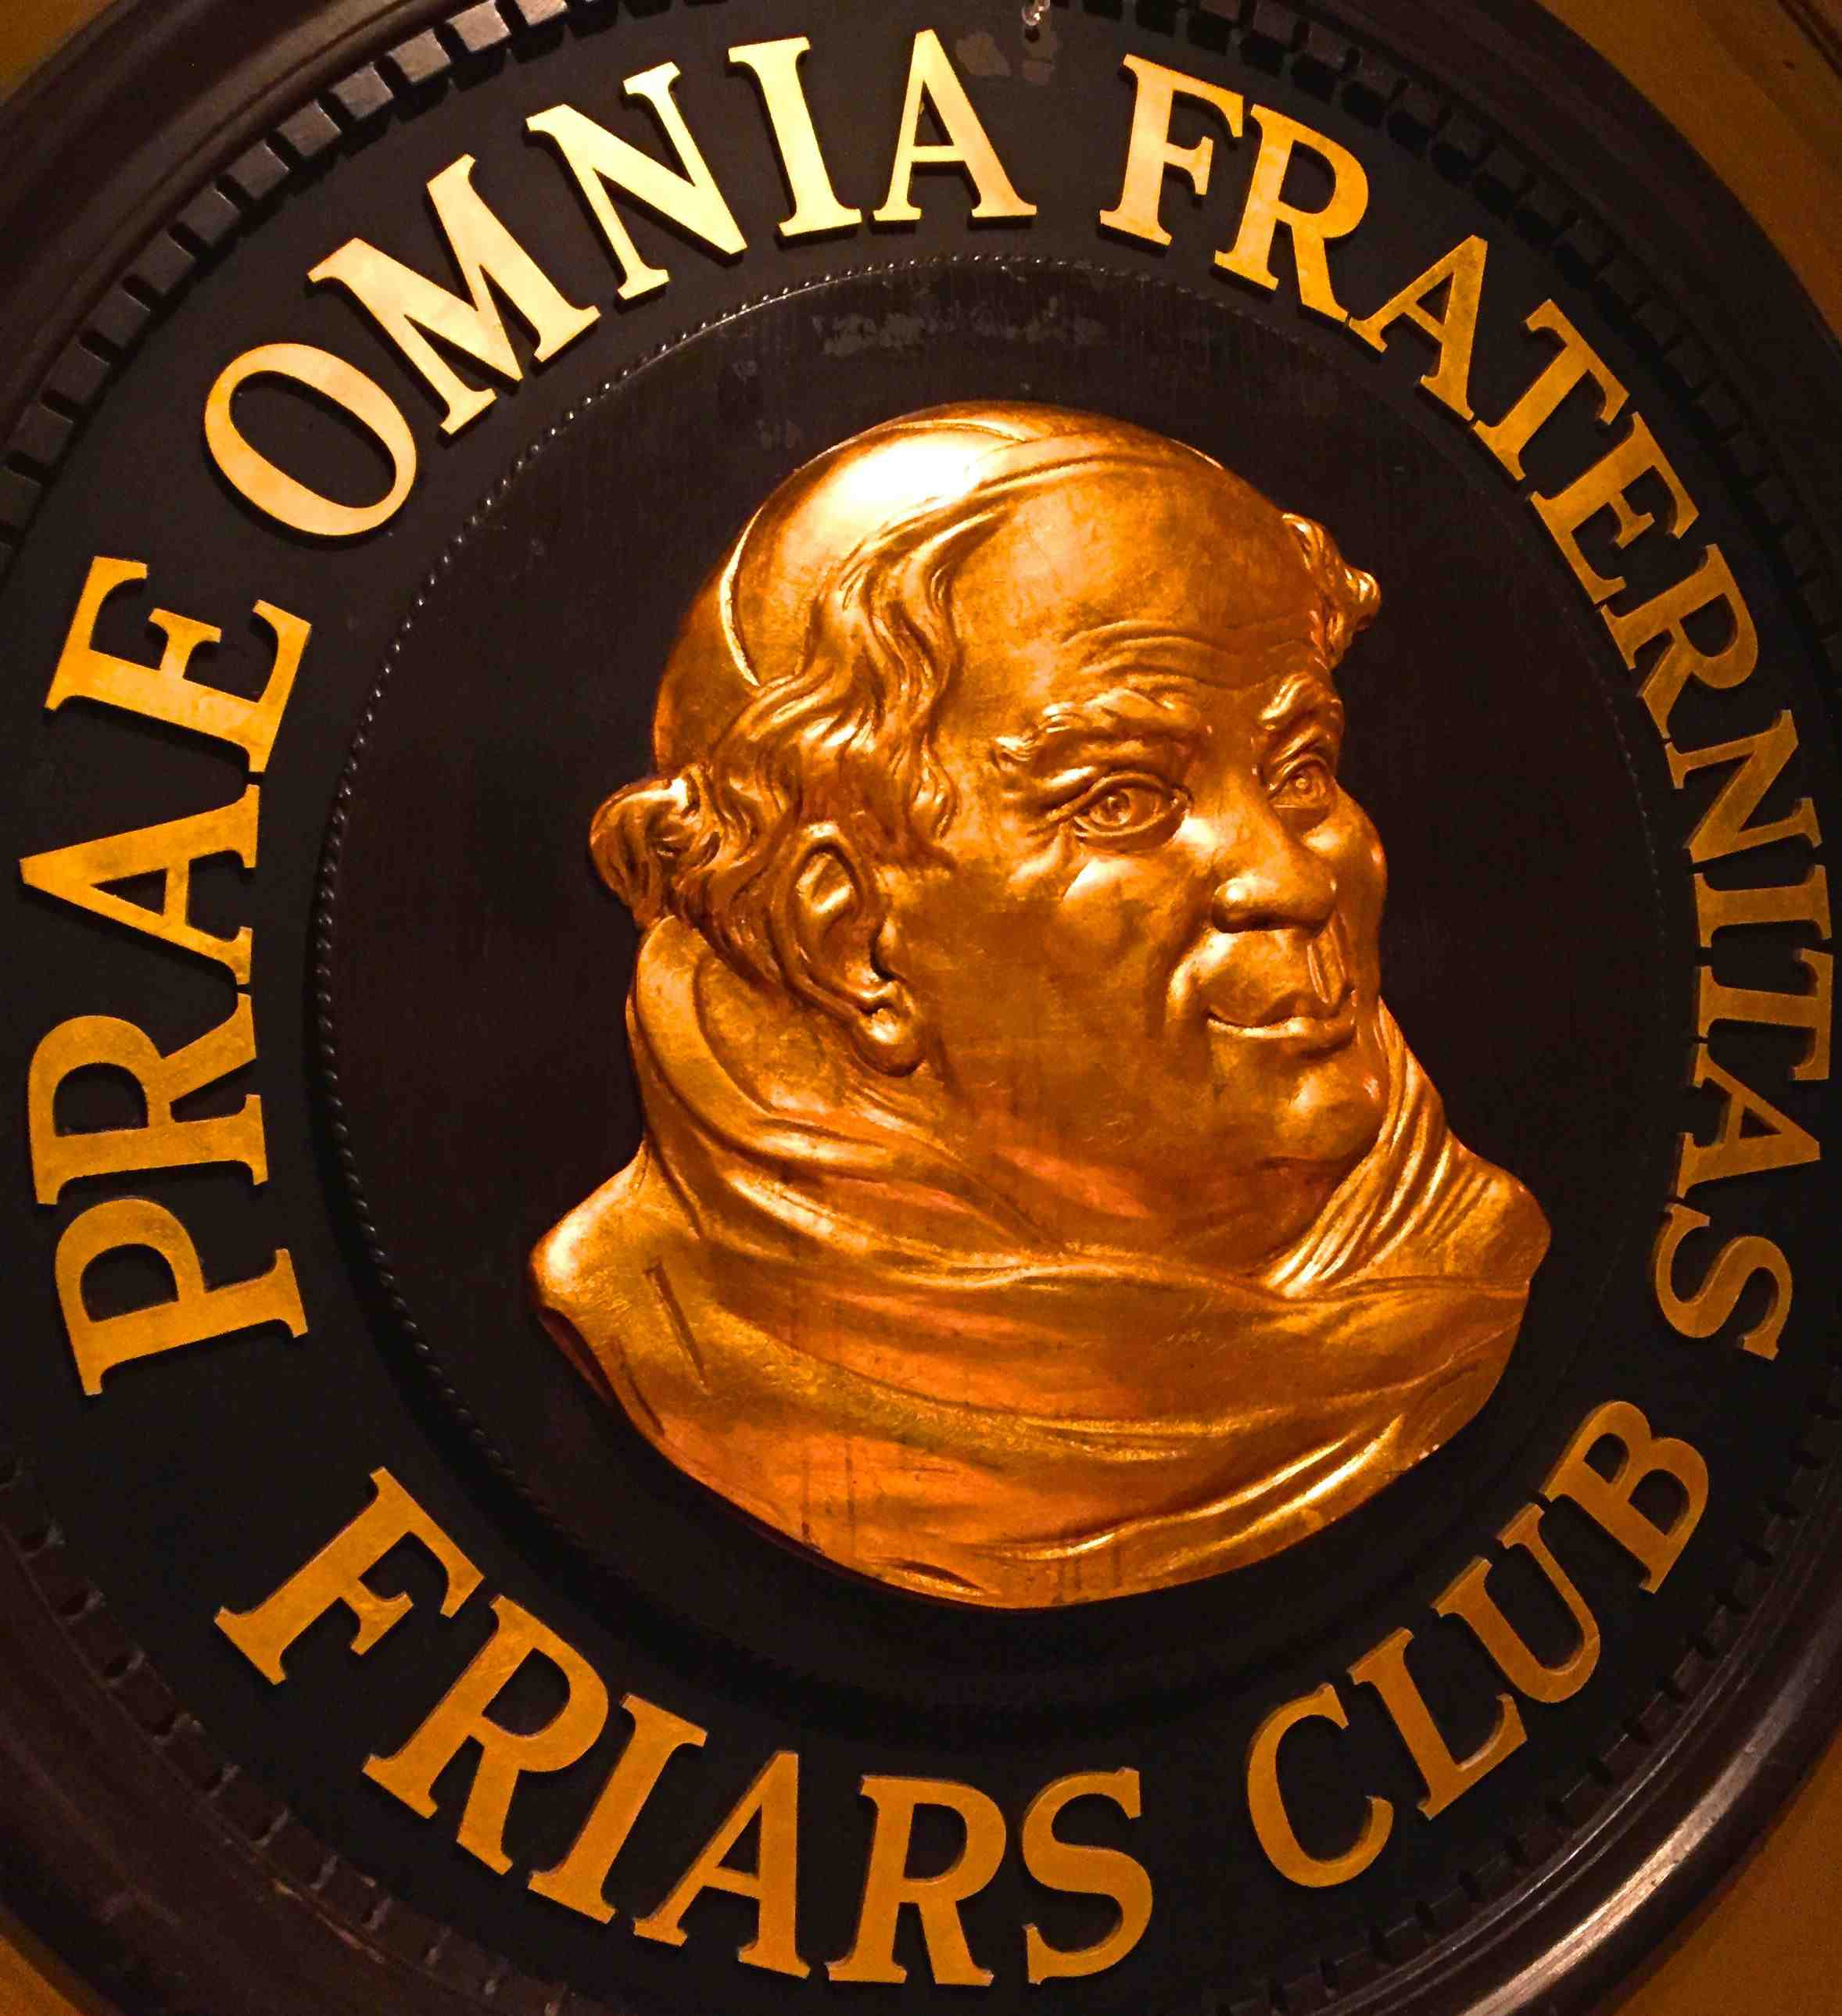 The Friars Foundation Lincoln Awards